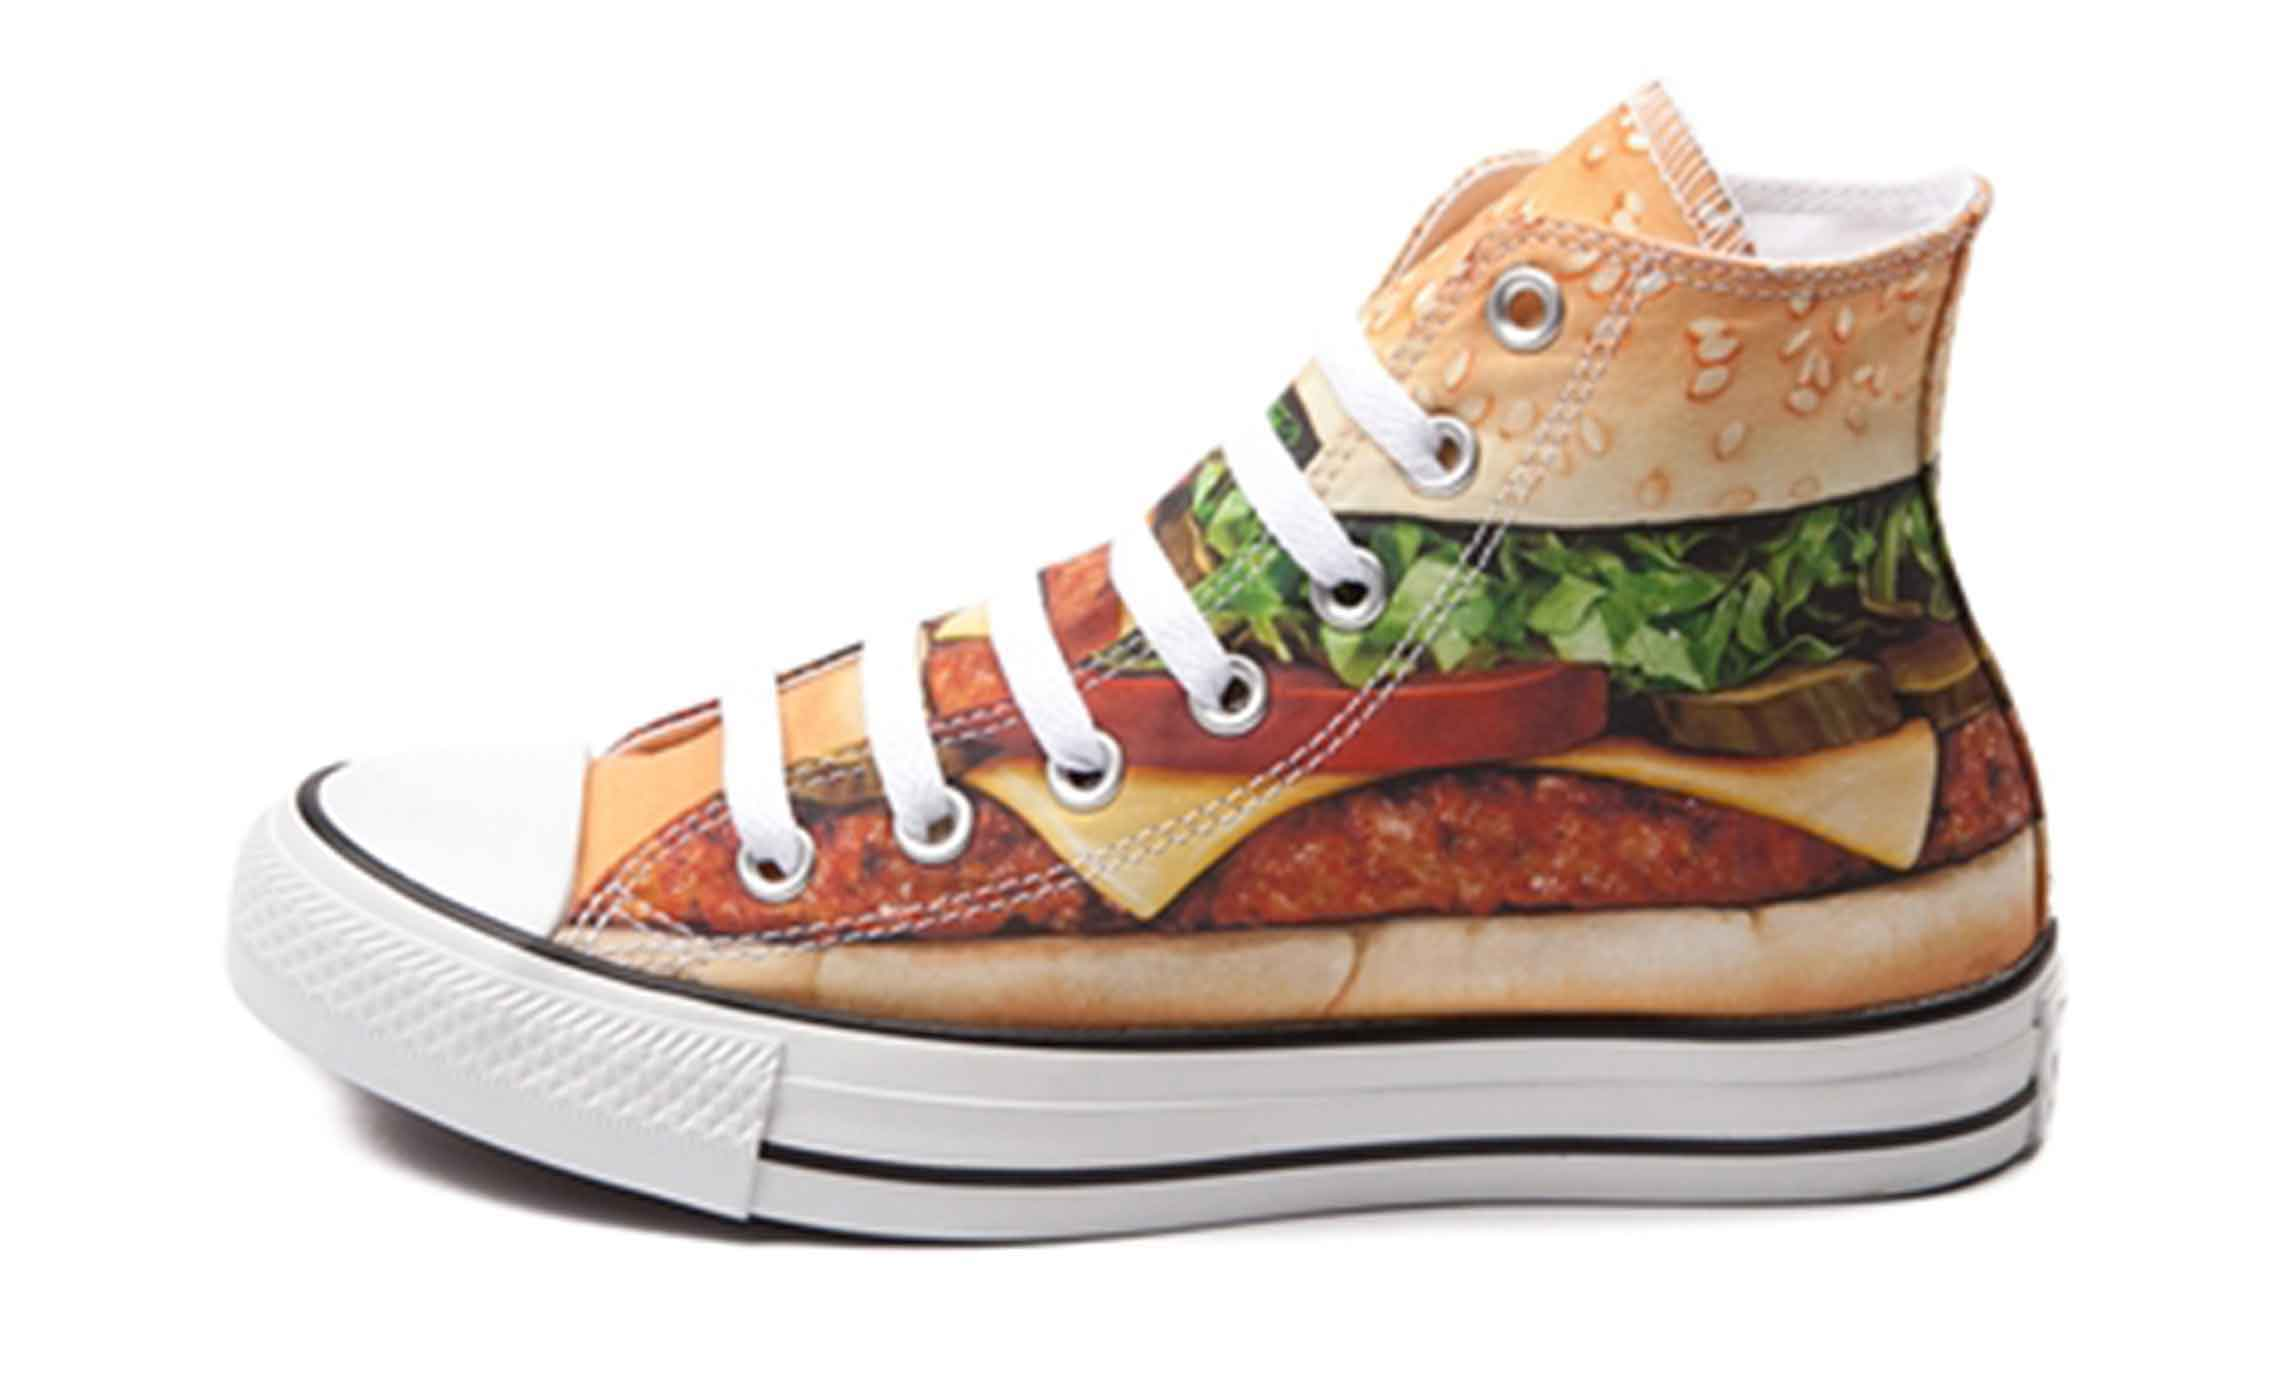 Cheeseburger Sneakers